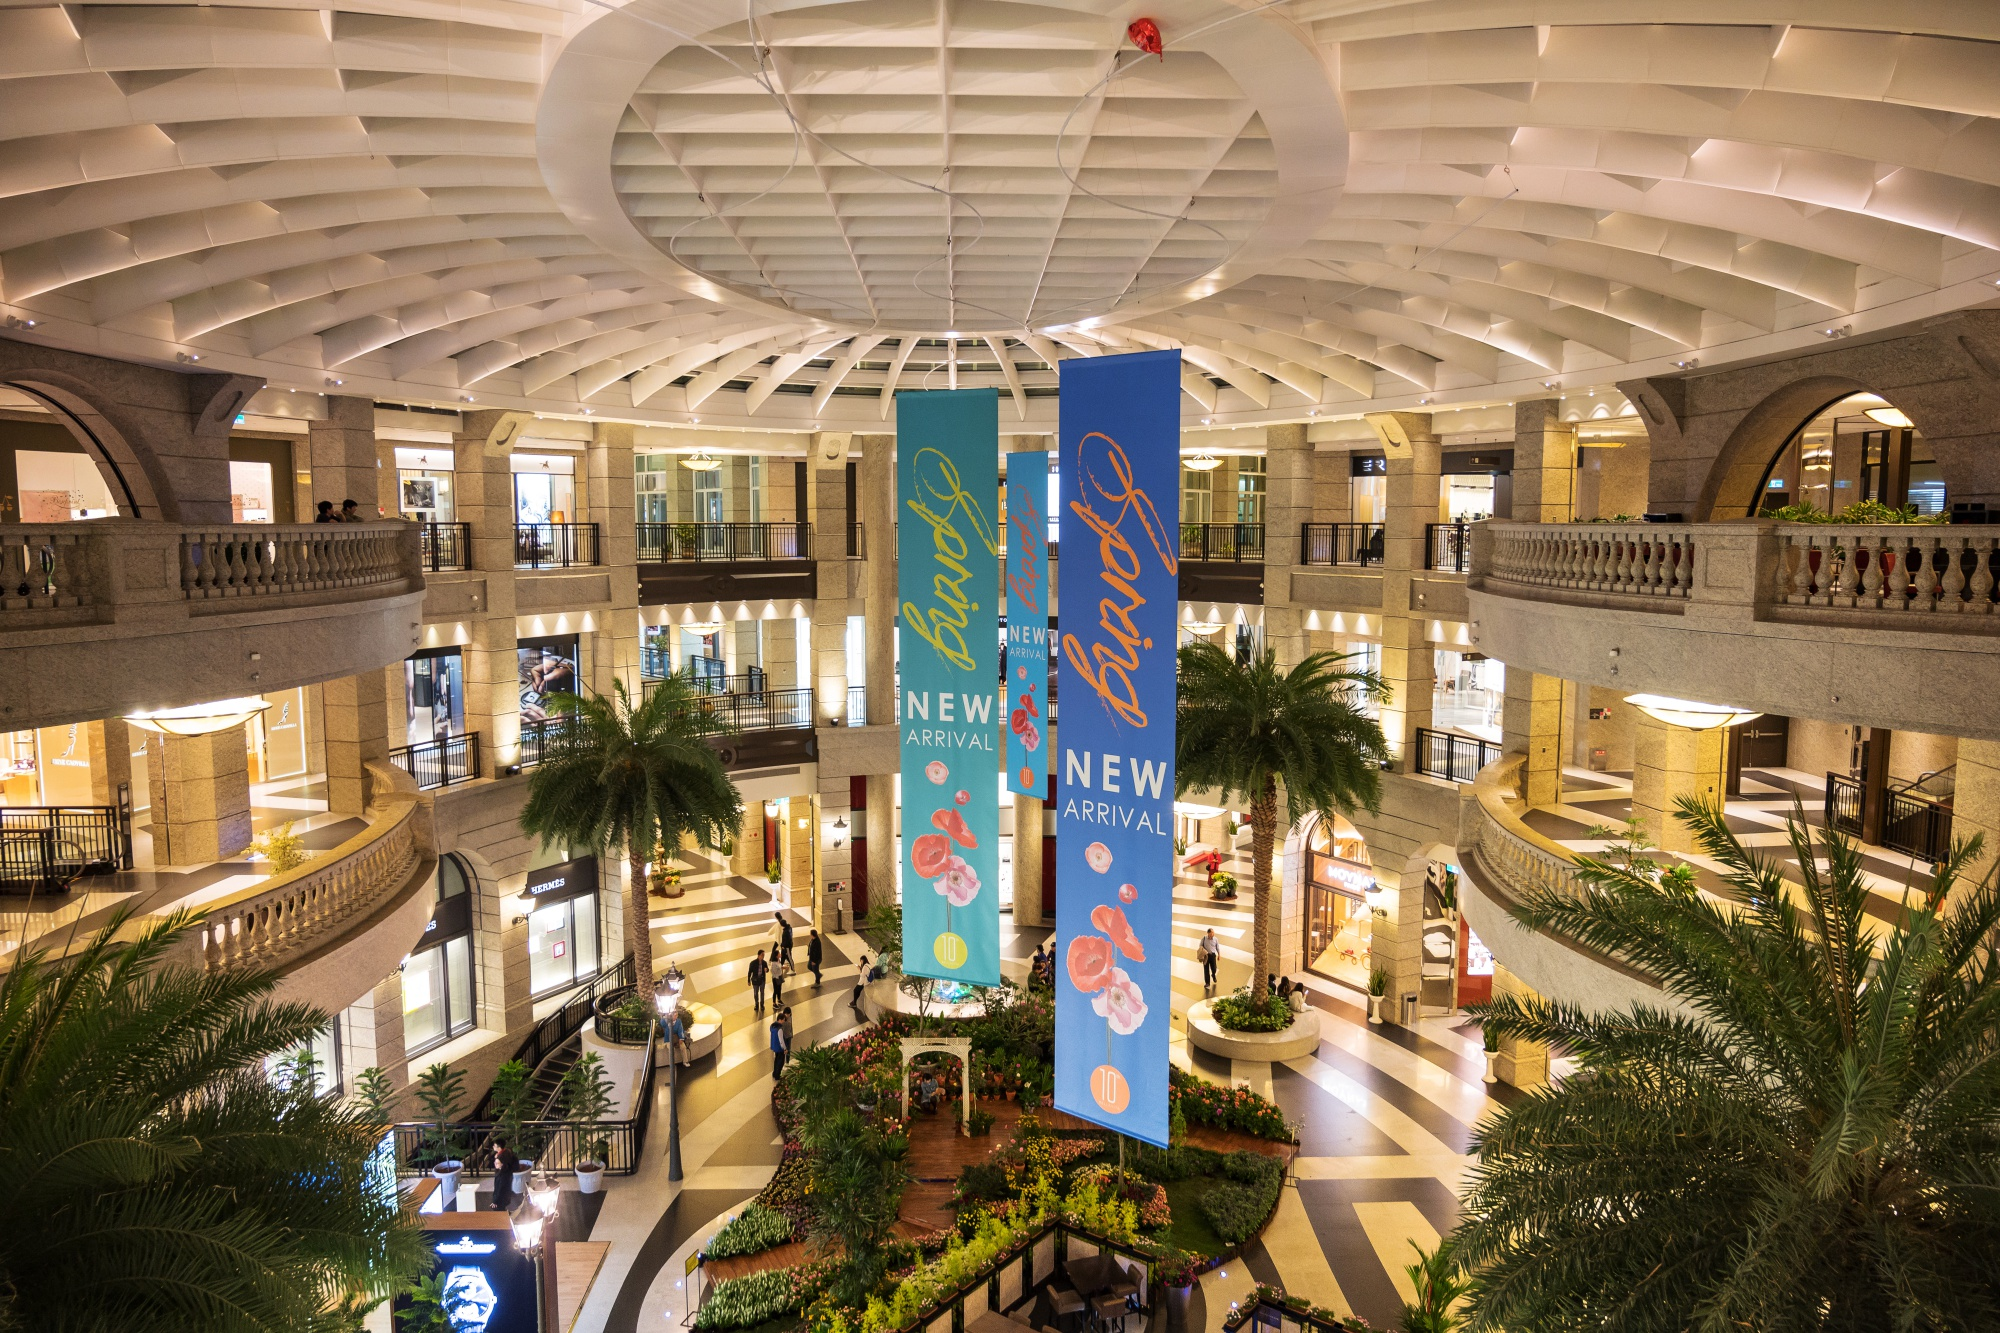 Inside the Bellavita luxury mall